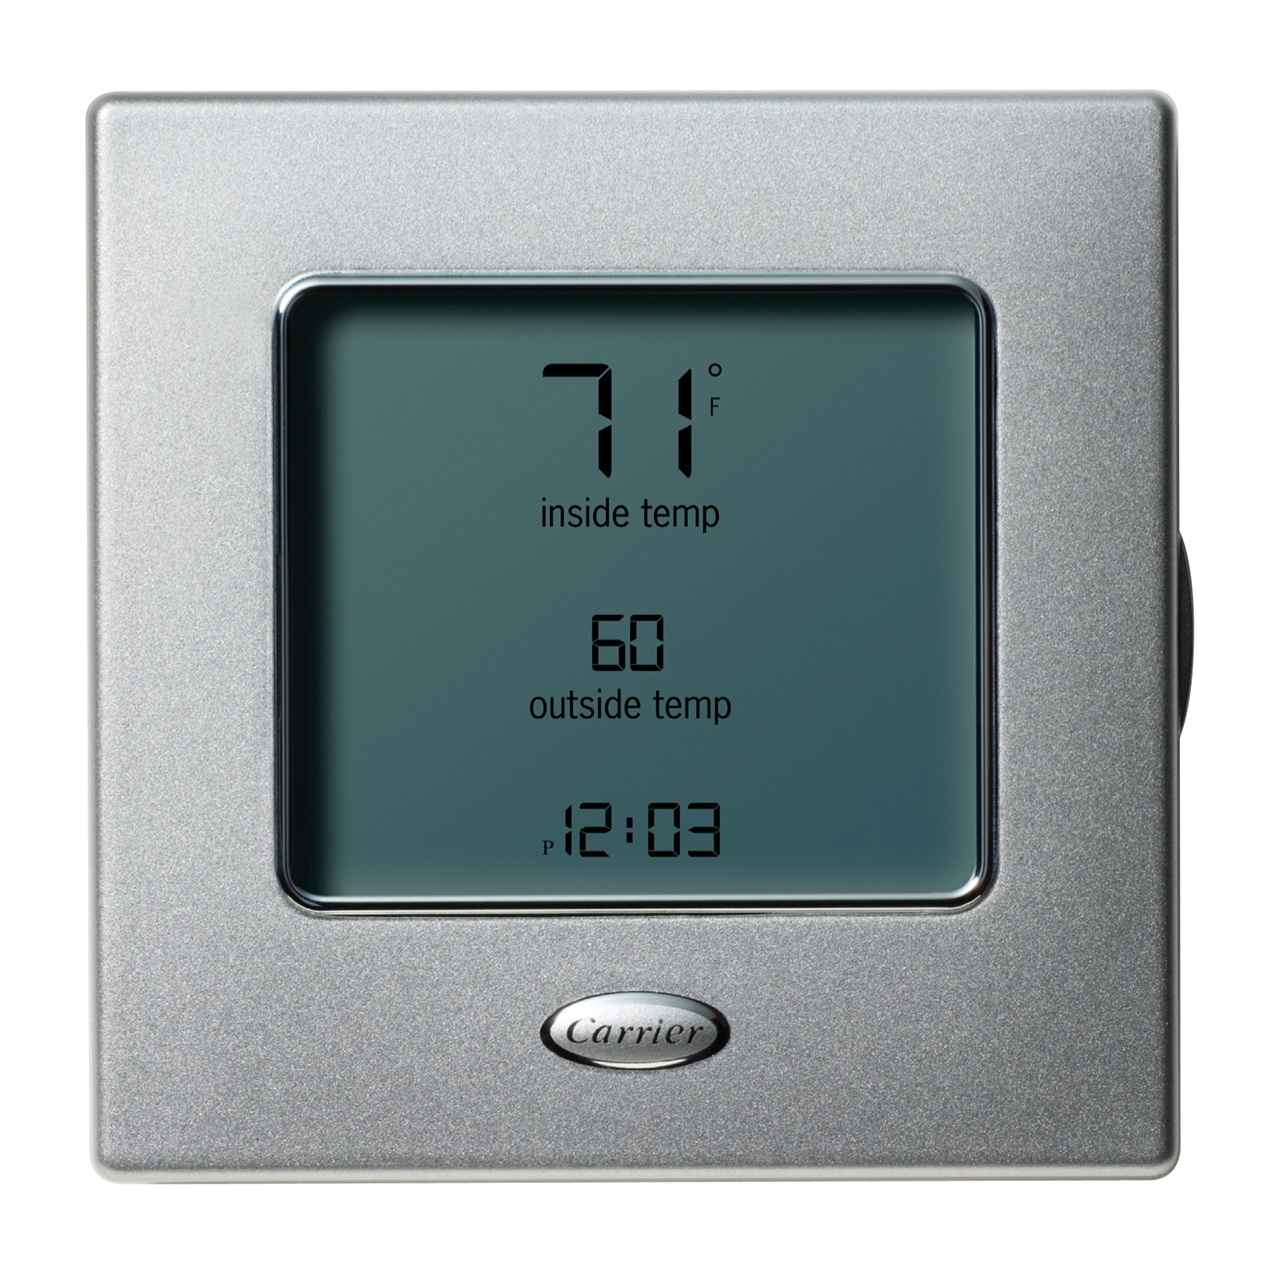 carrier-33CS2PP2S-03-commerical-non-communicating-programmable-thermostat